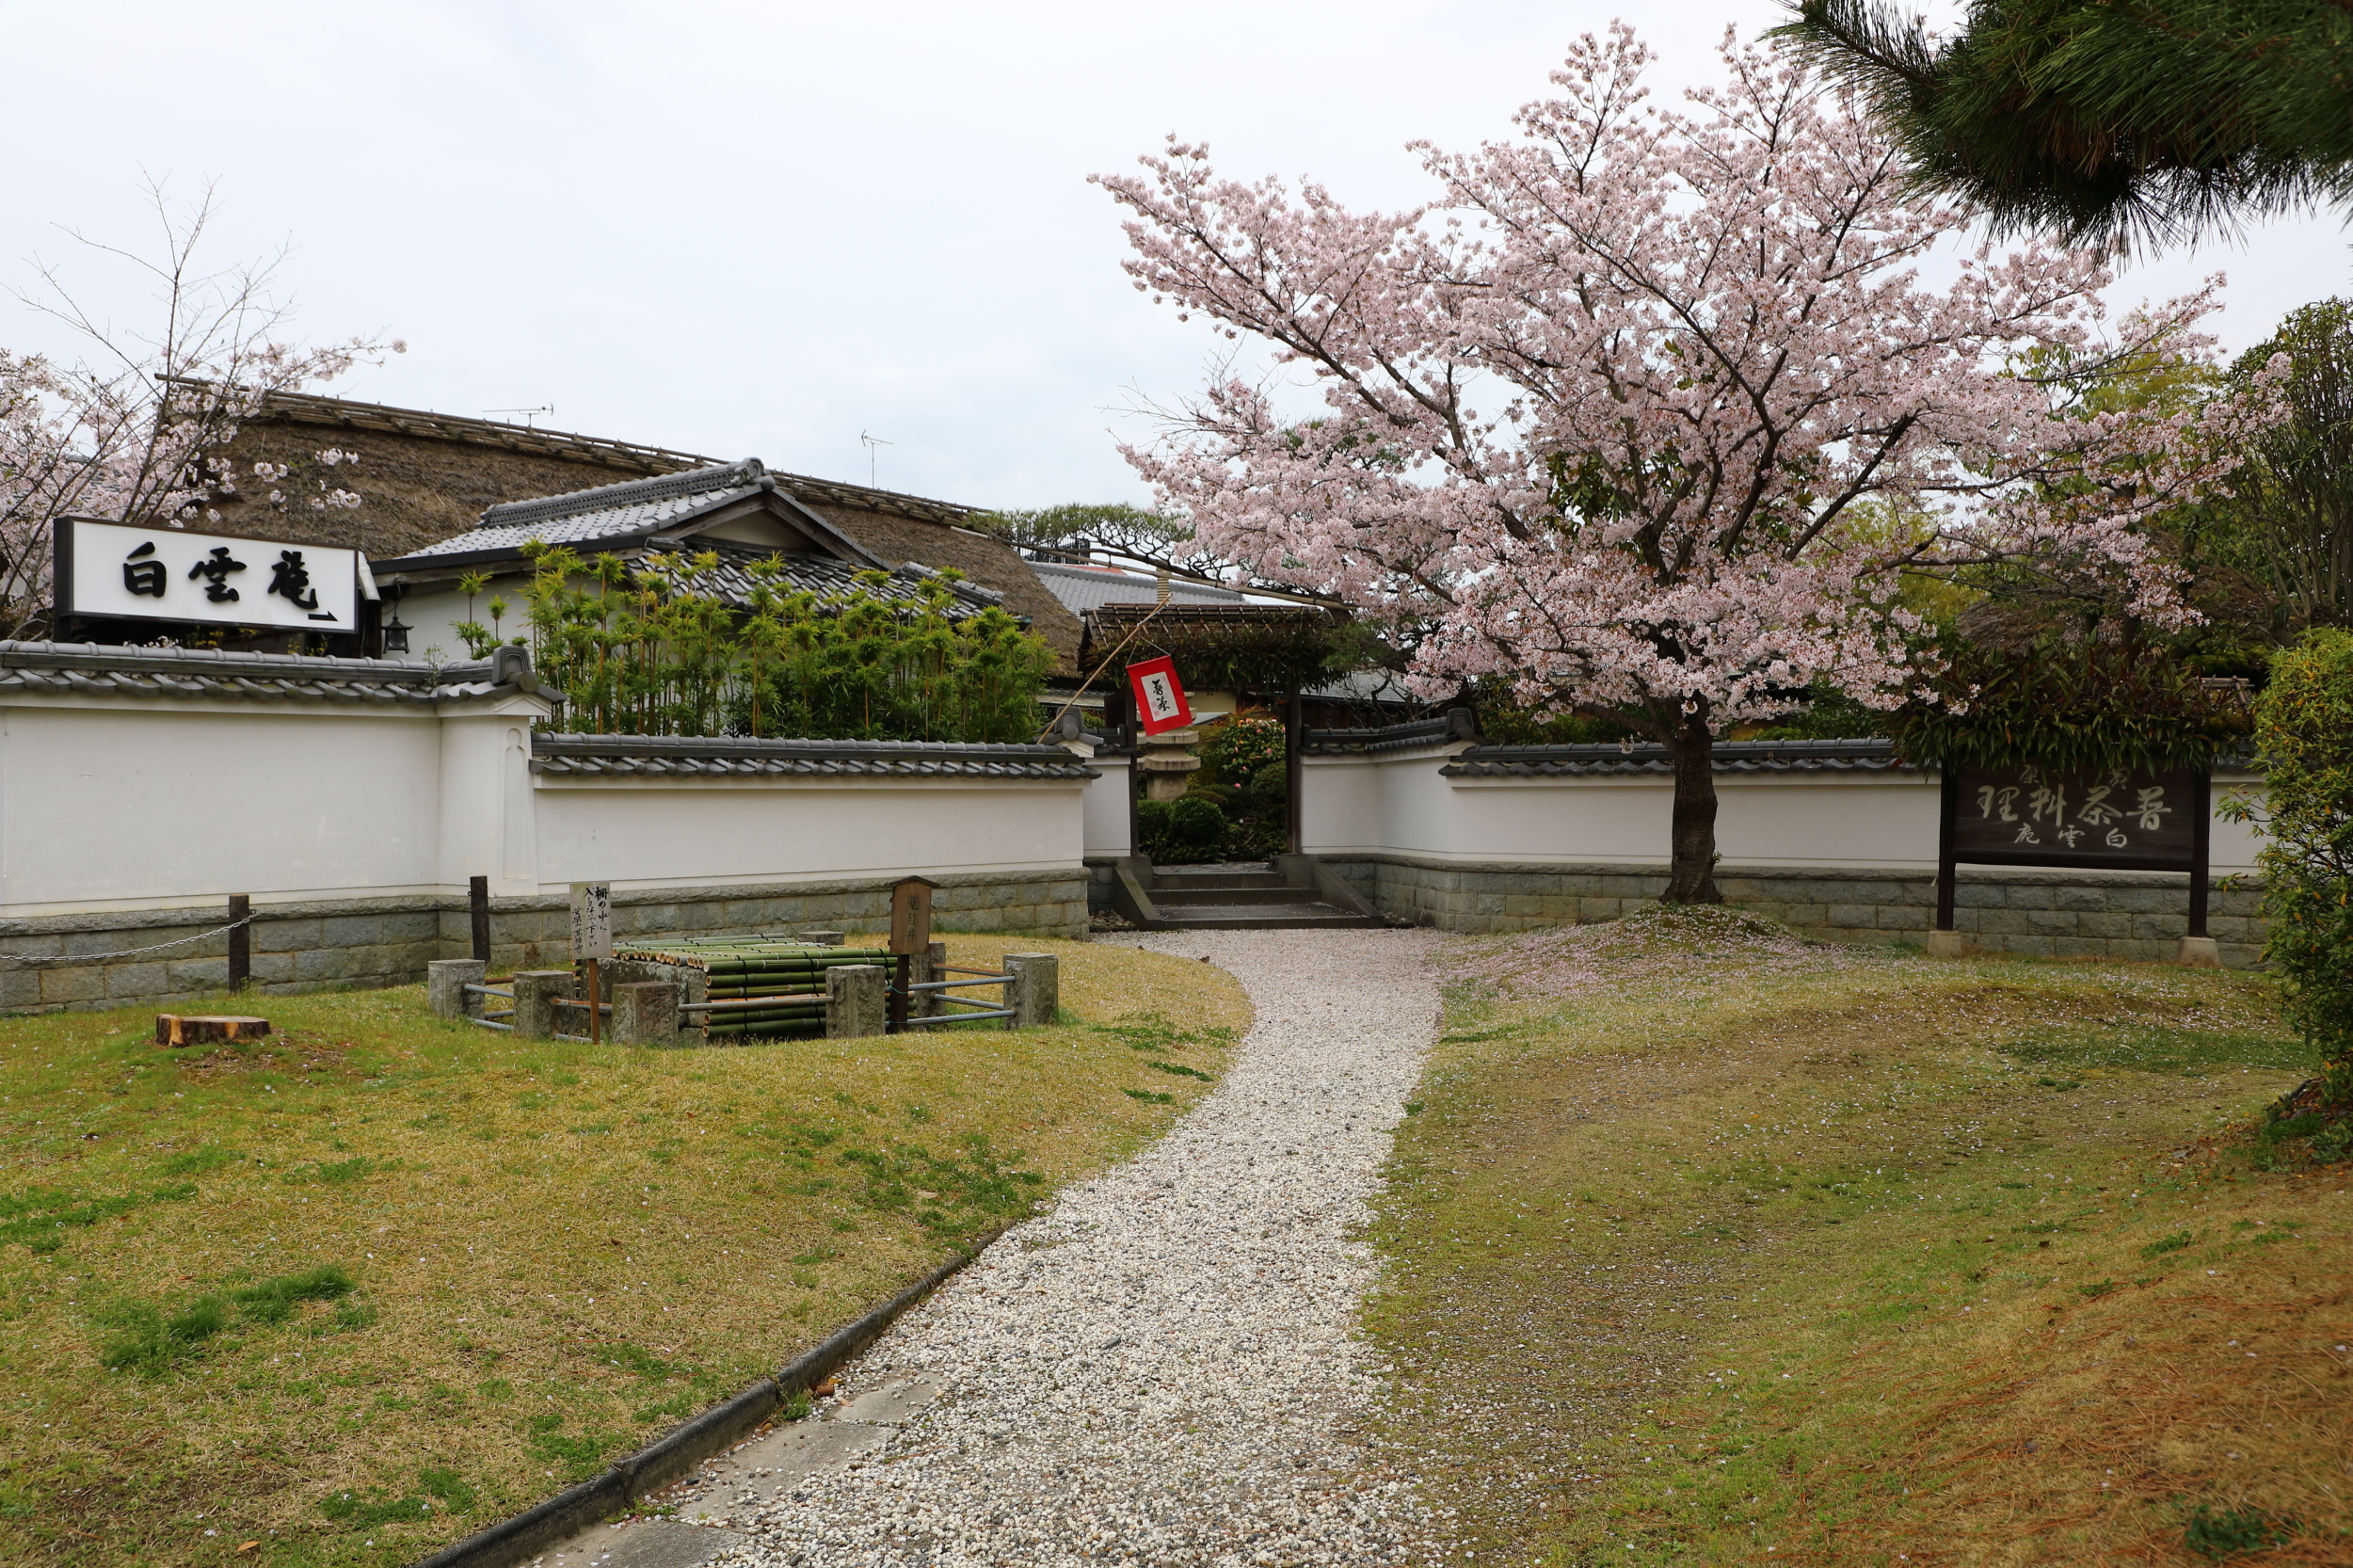 The entrance to Hakuun-an is across a small park located across the street from the main gate of Manpuku-ji Temple.